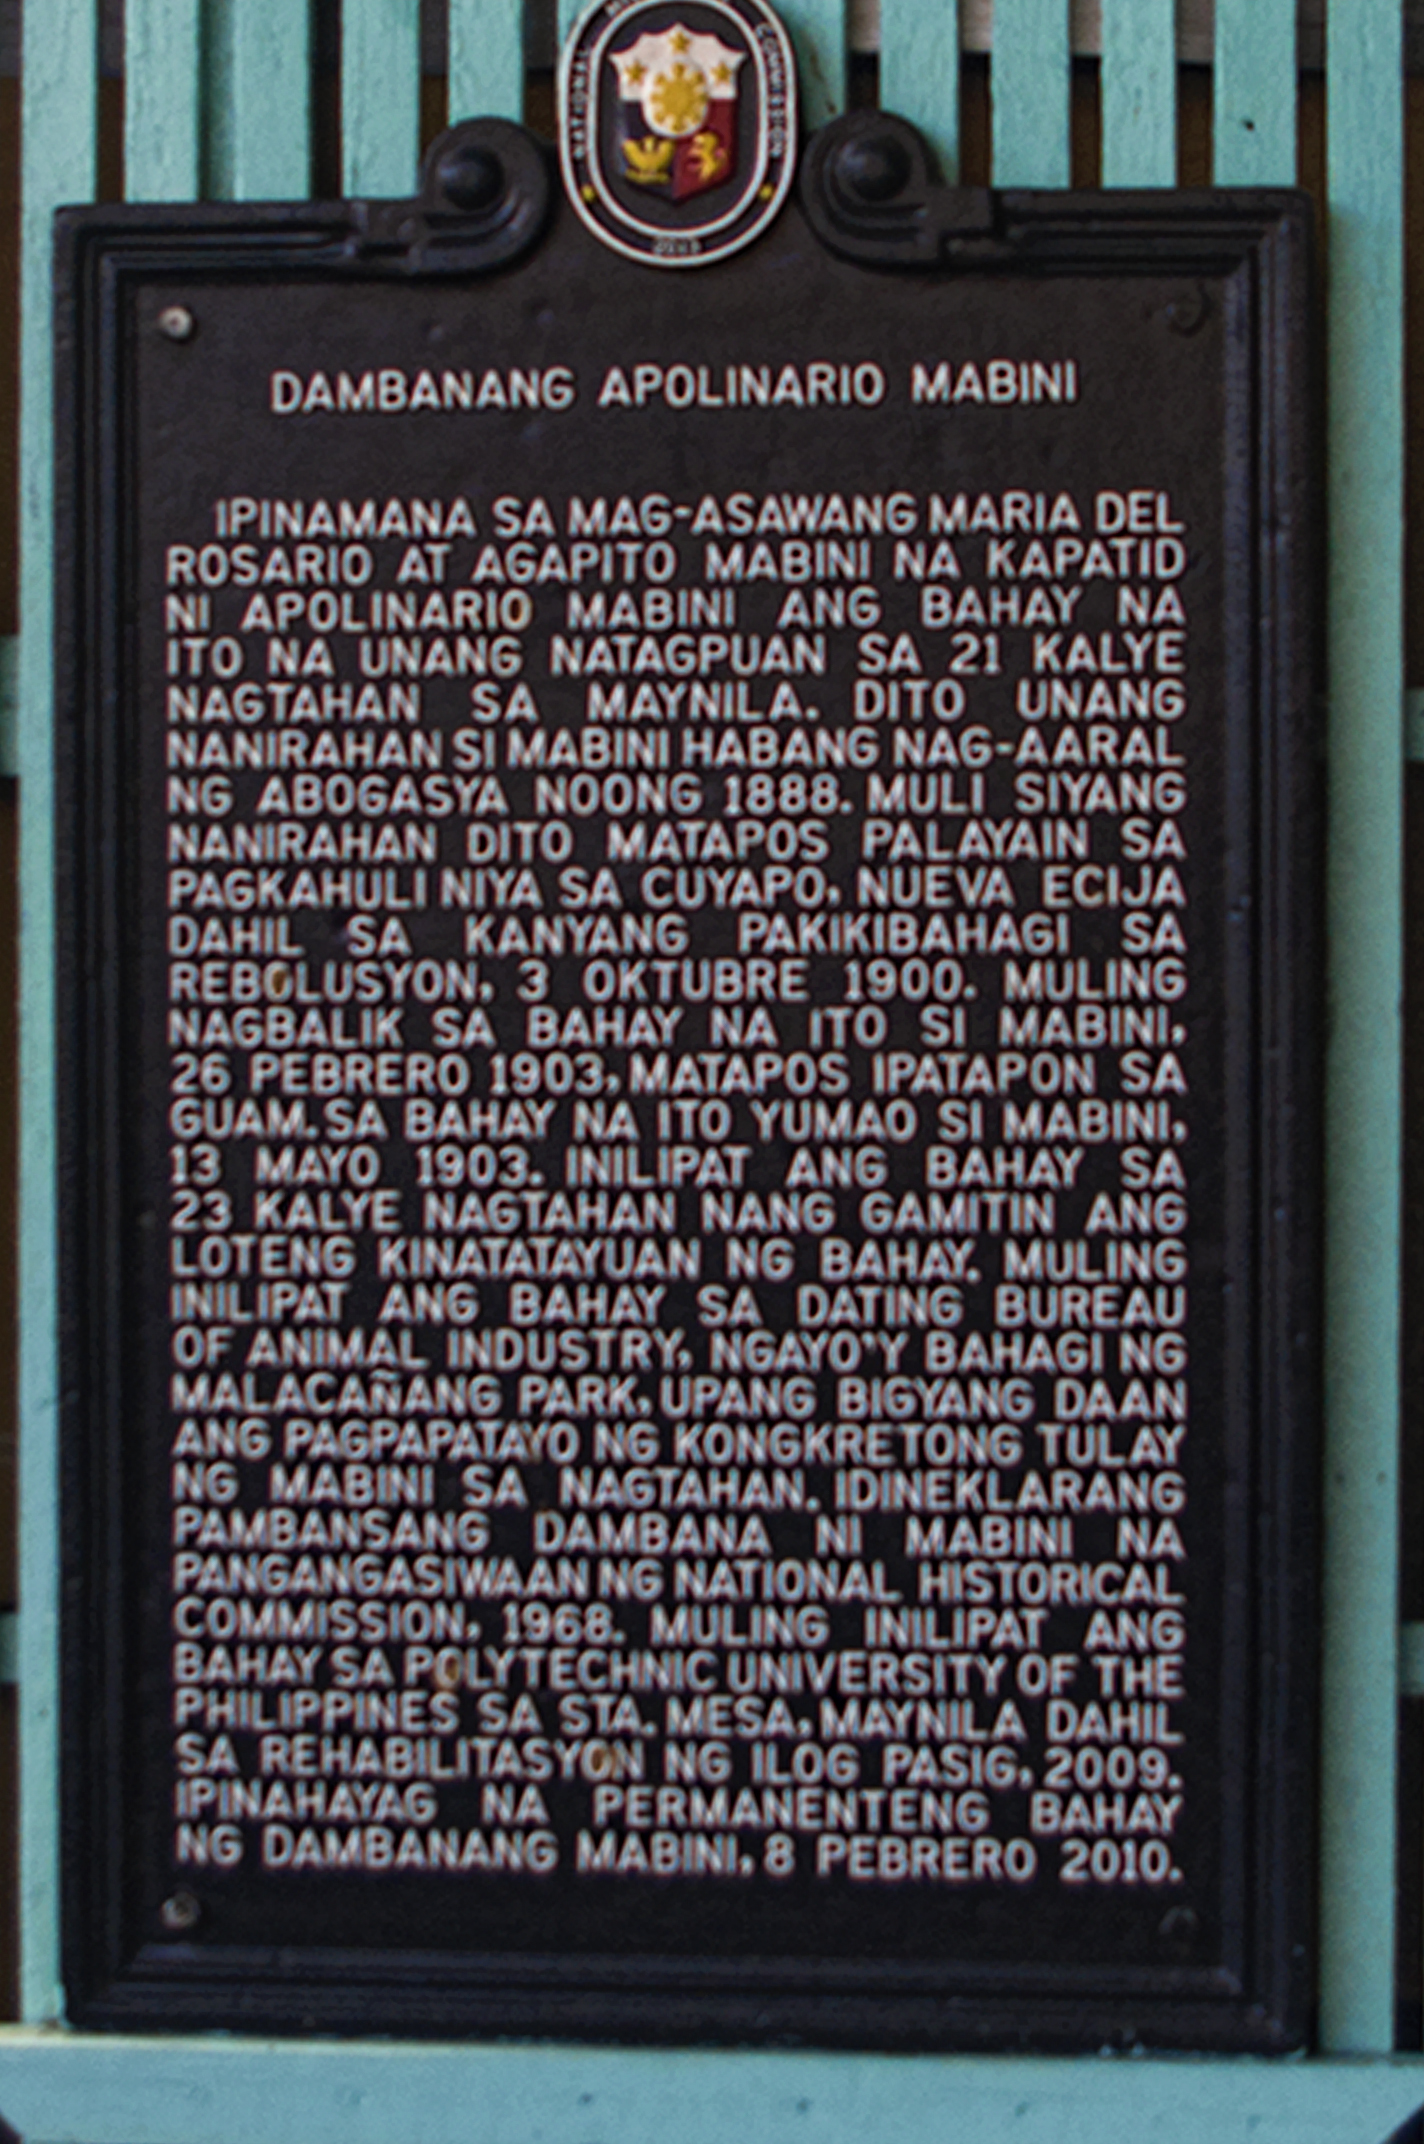 essay works of apolinario mabini Apolinario mabini was one of the foremost of the philippine revolutionary heroes it was here that he wrote his chief work, la revolución filipina.